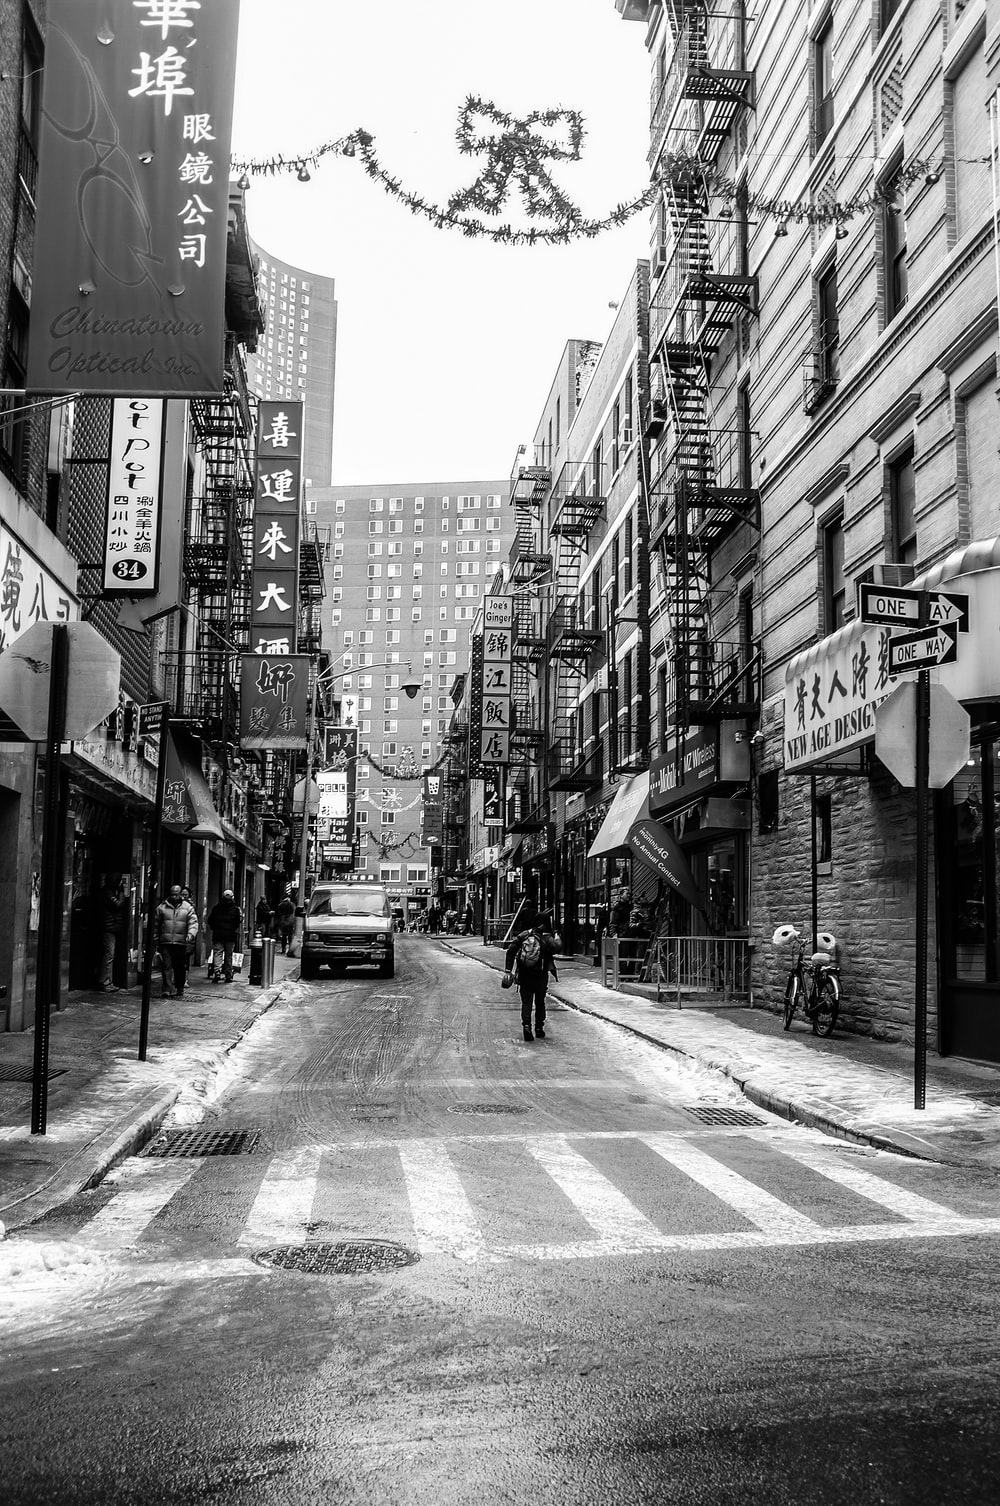 grayscale photography of street